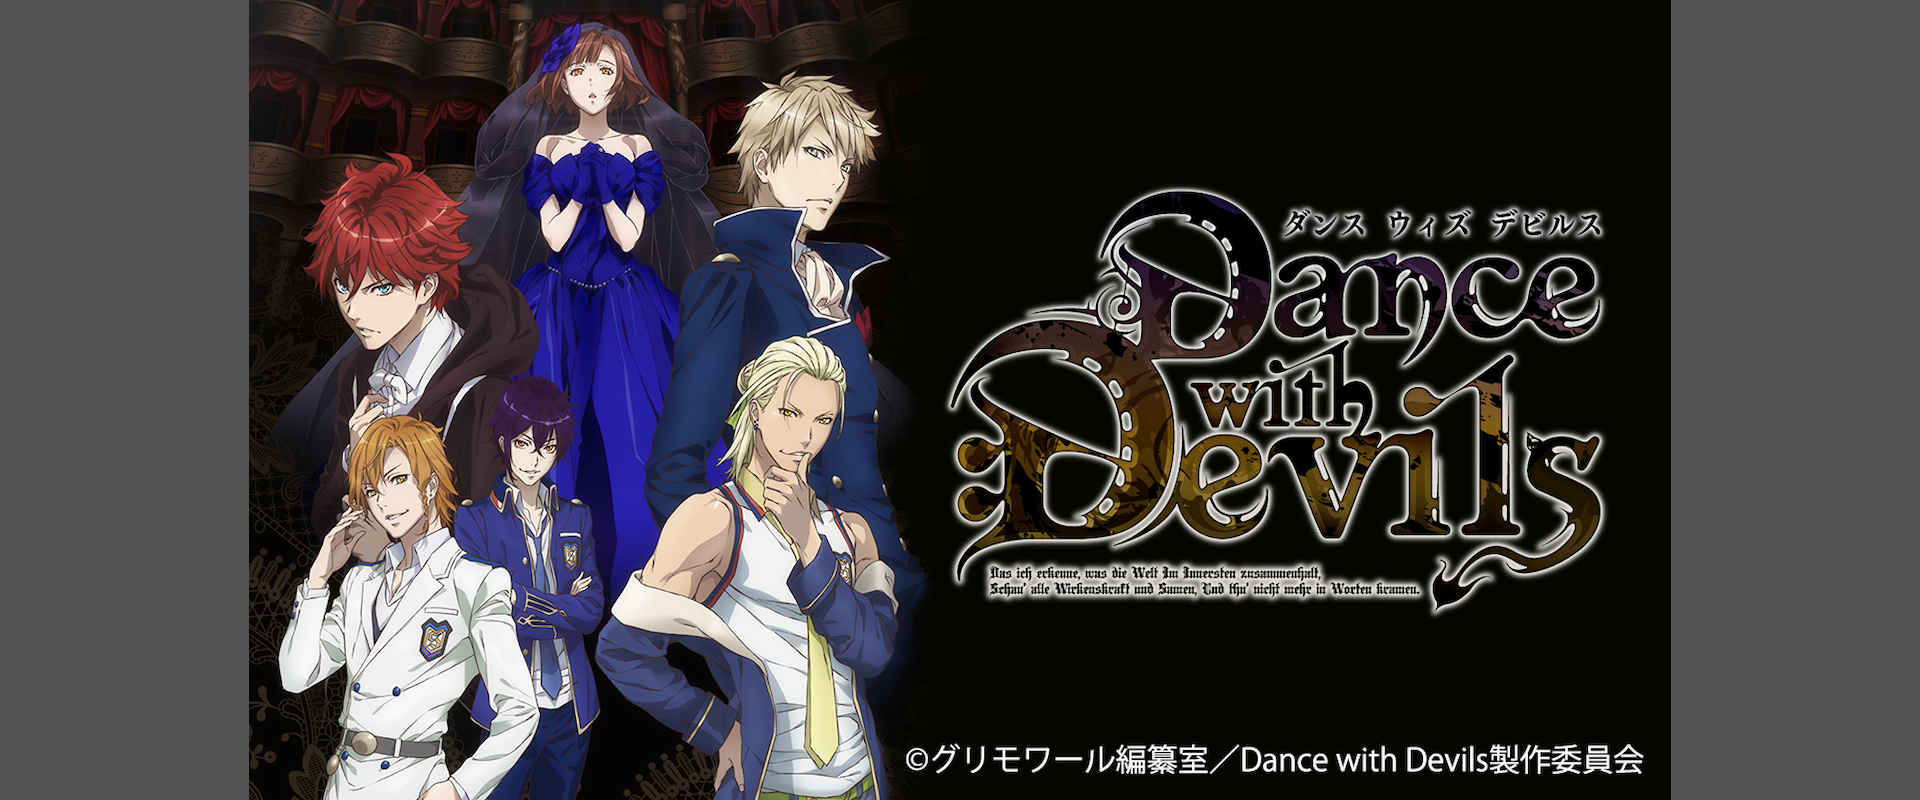 Dance with Devilsはどれで配信してる?